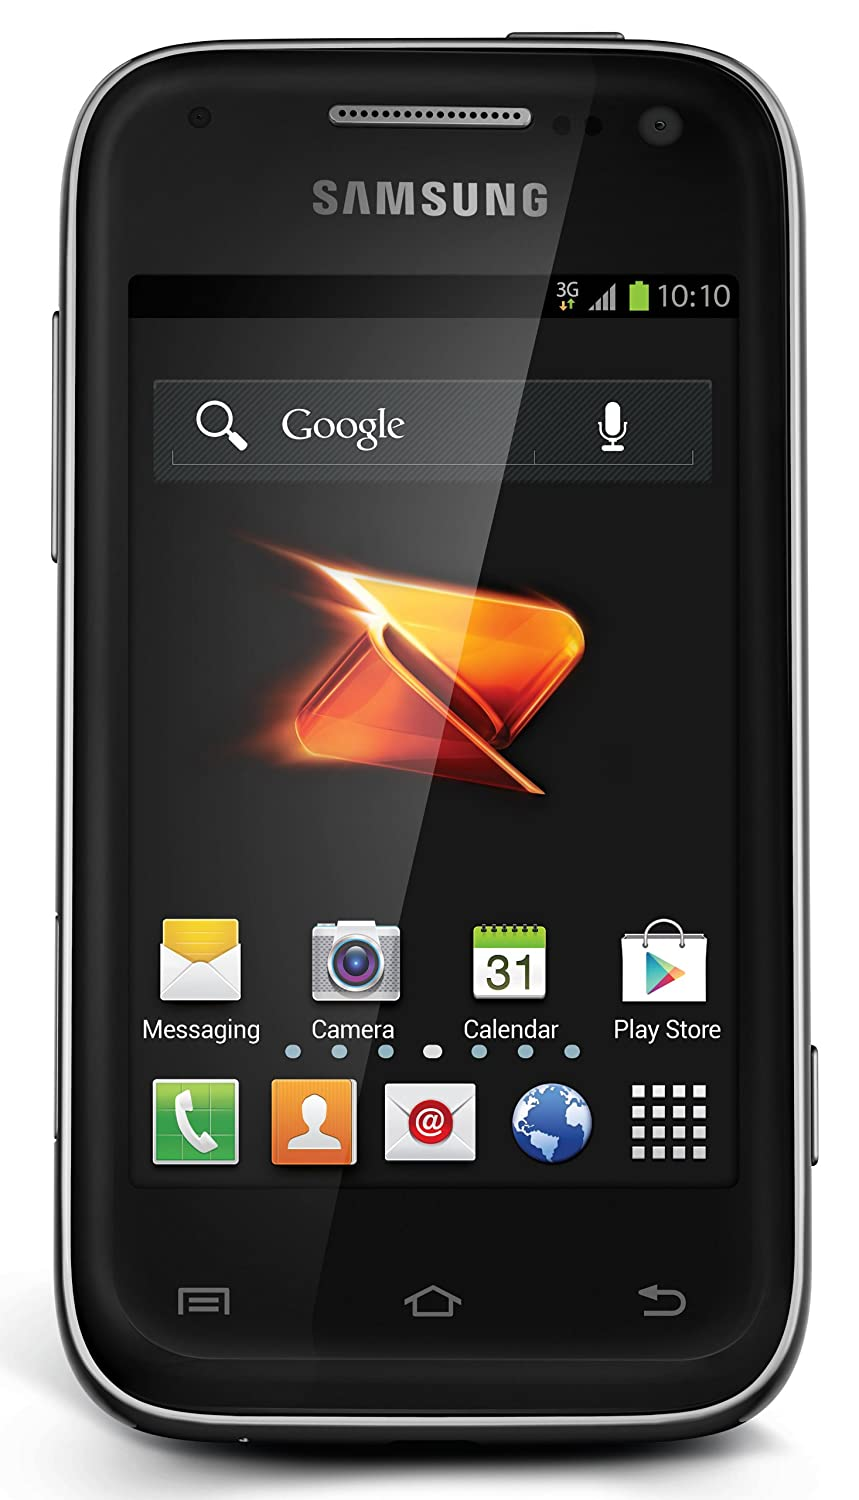 Samsung-Galaxy-Rush-Prepaid-Android-Phone-Boost-Mobile-